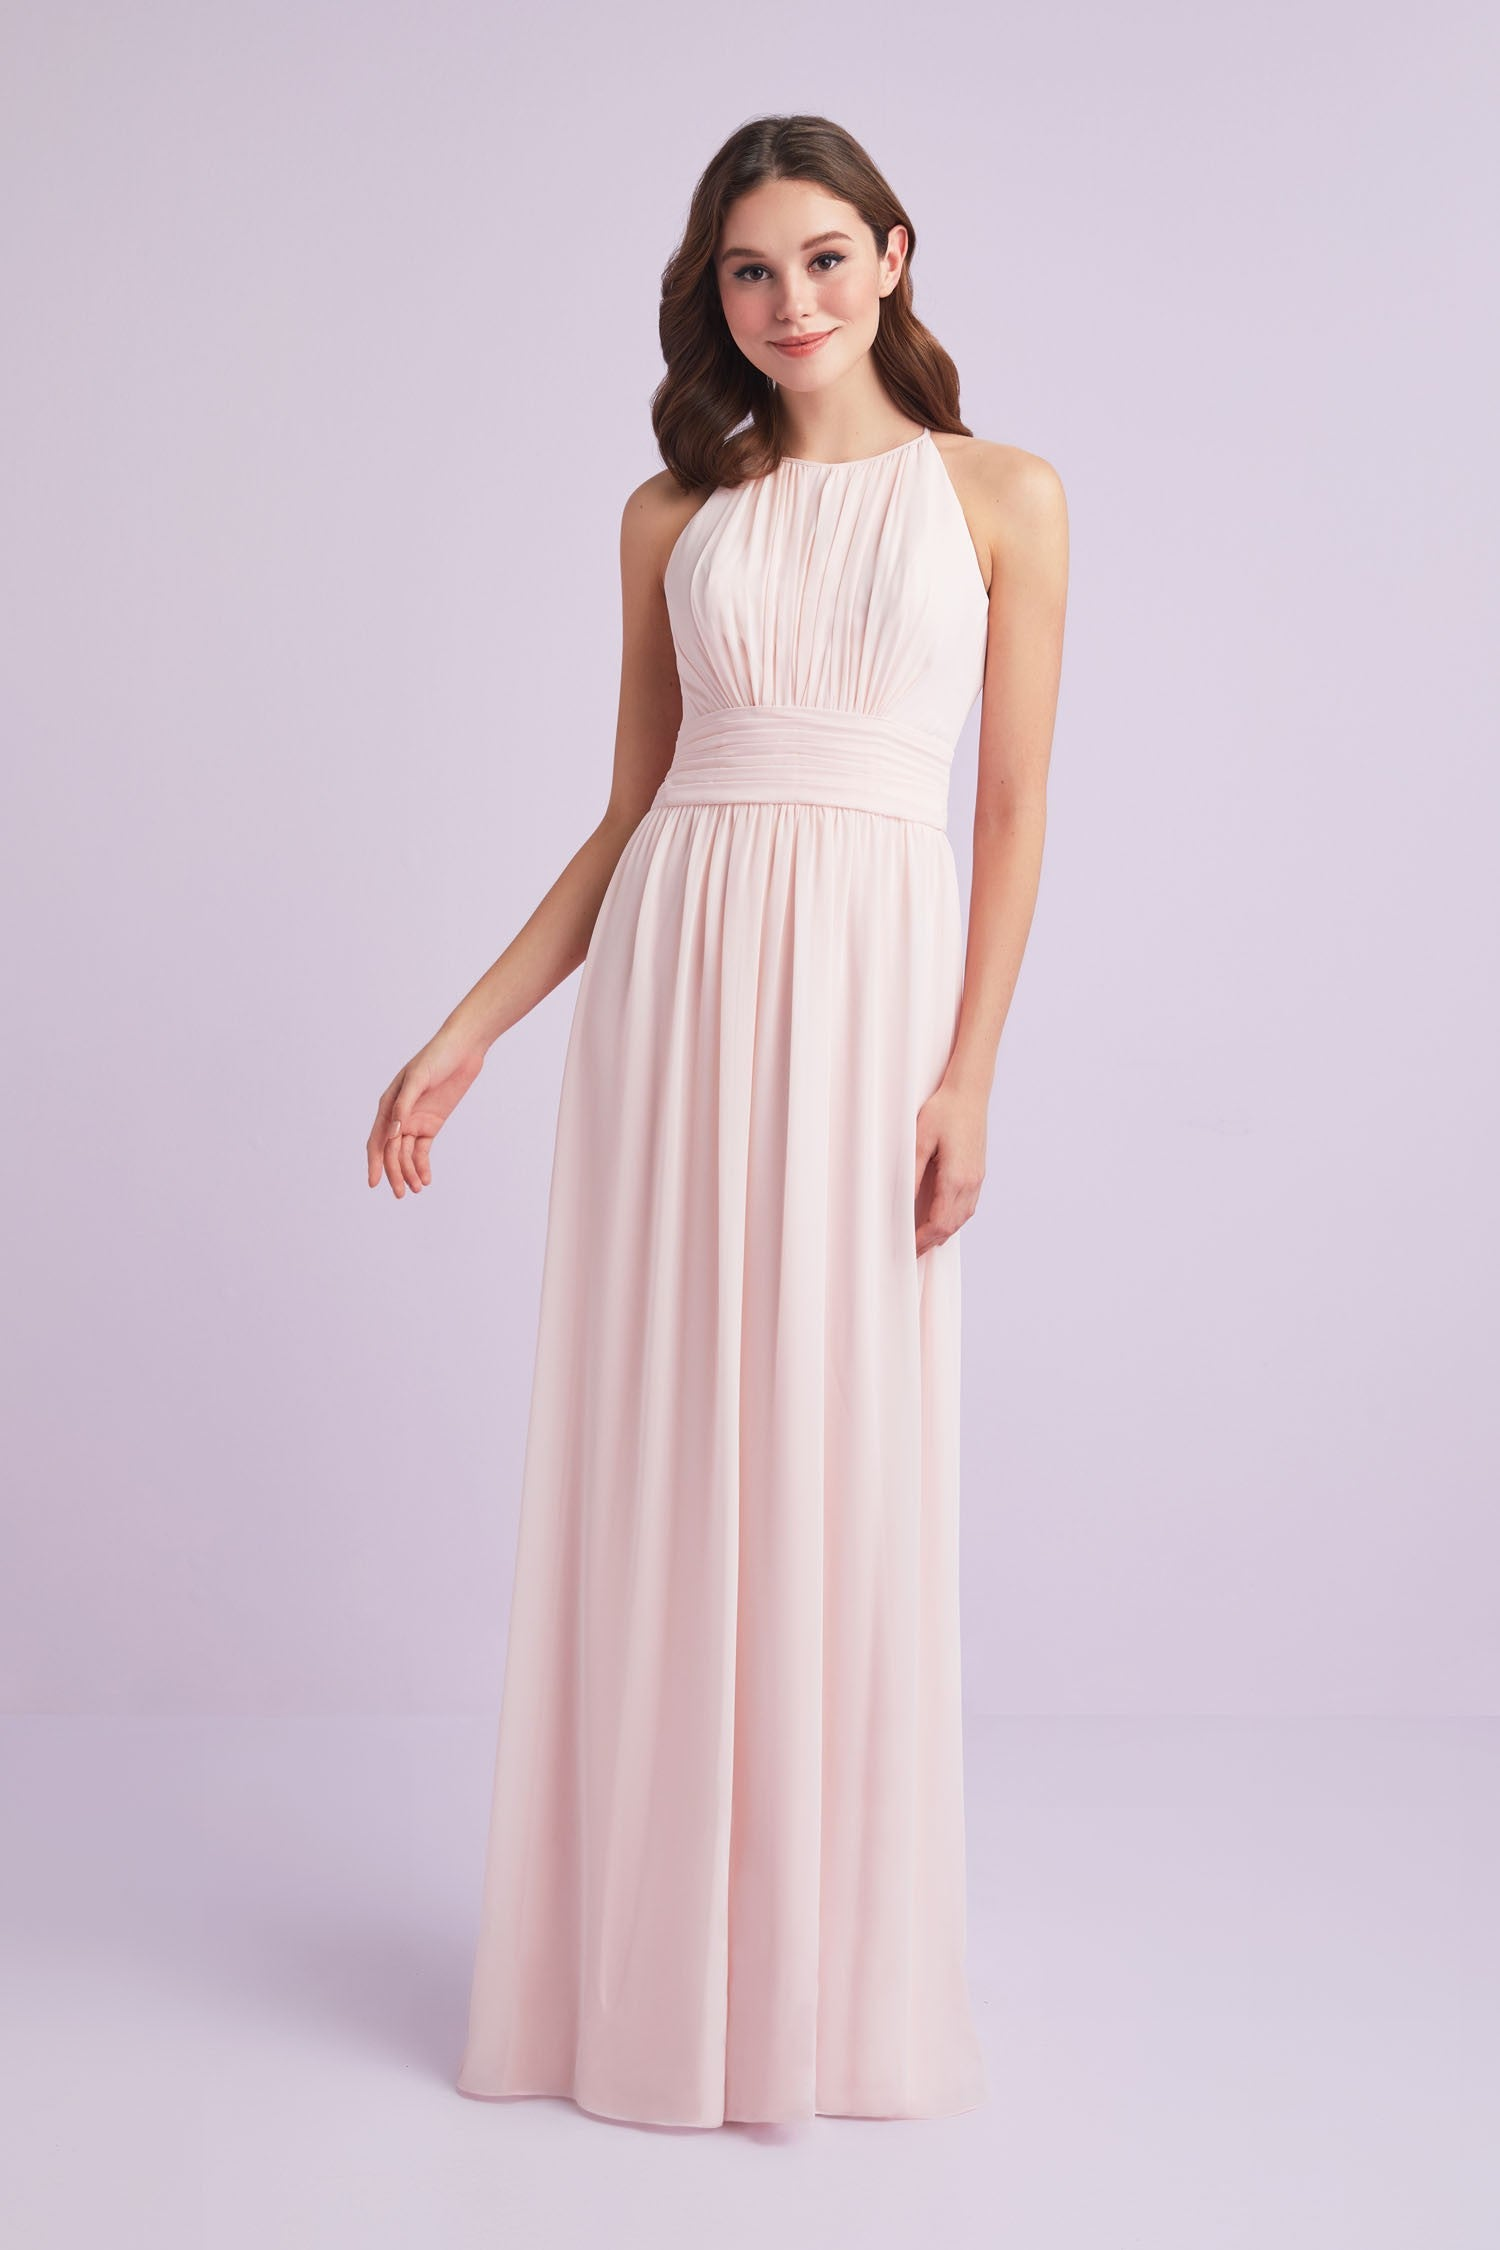 e2aa5a5286f High-Neck Chiffon Bridesmaid Dress with Keyhole